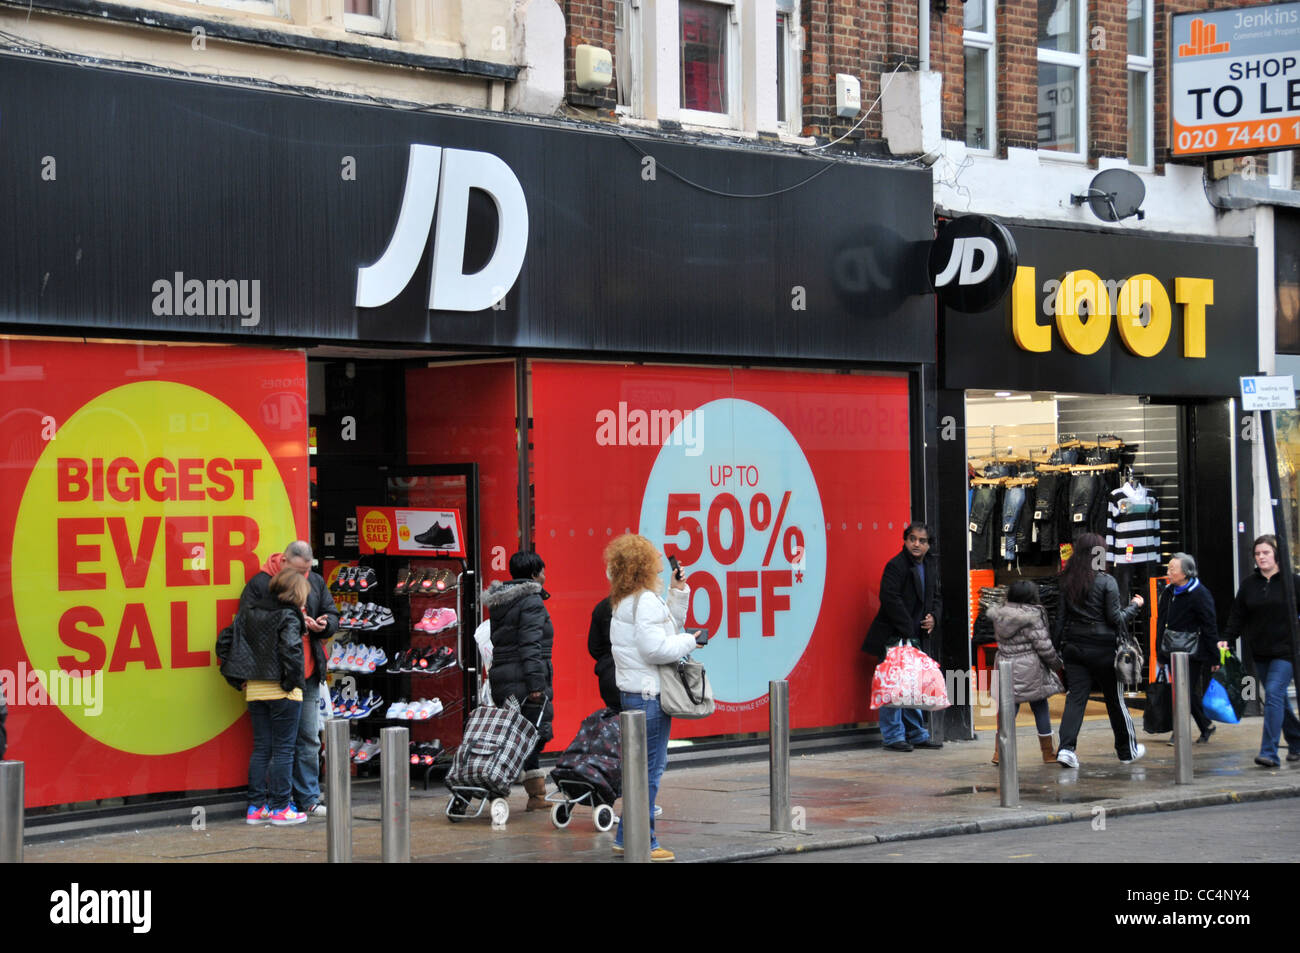 JD Sports sale Wood Green Loot sports wear urban shoes clothes London  august riots looting aa020b541